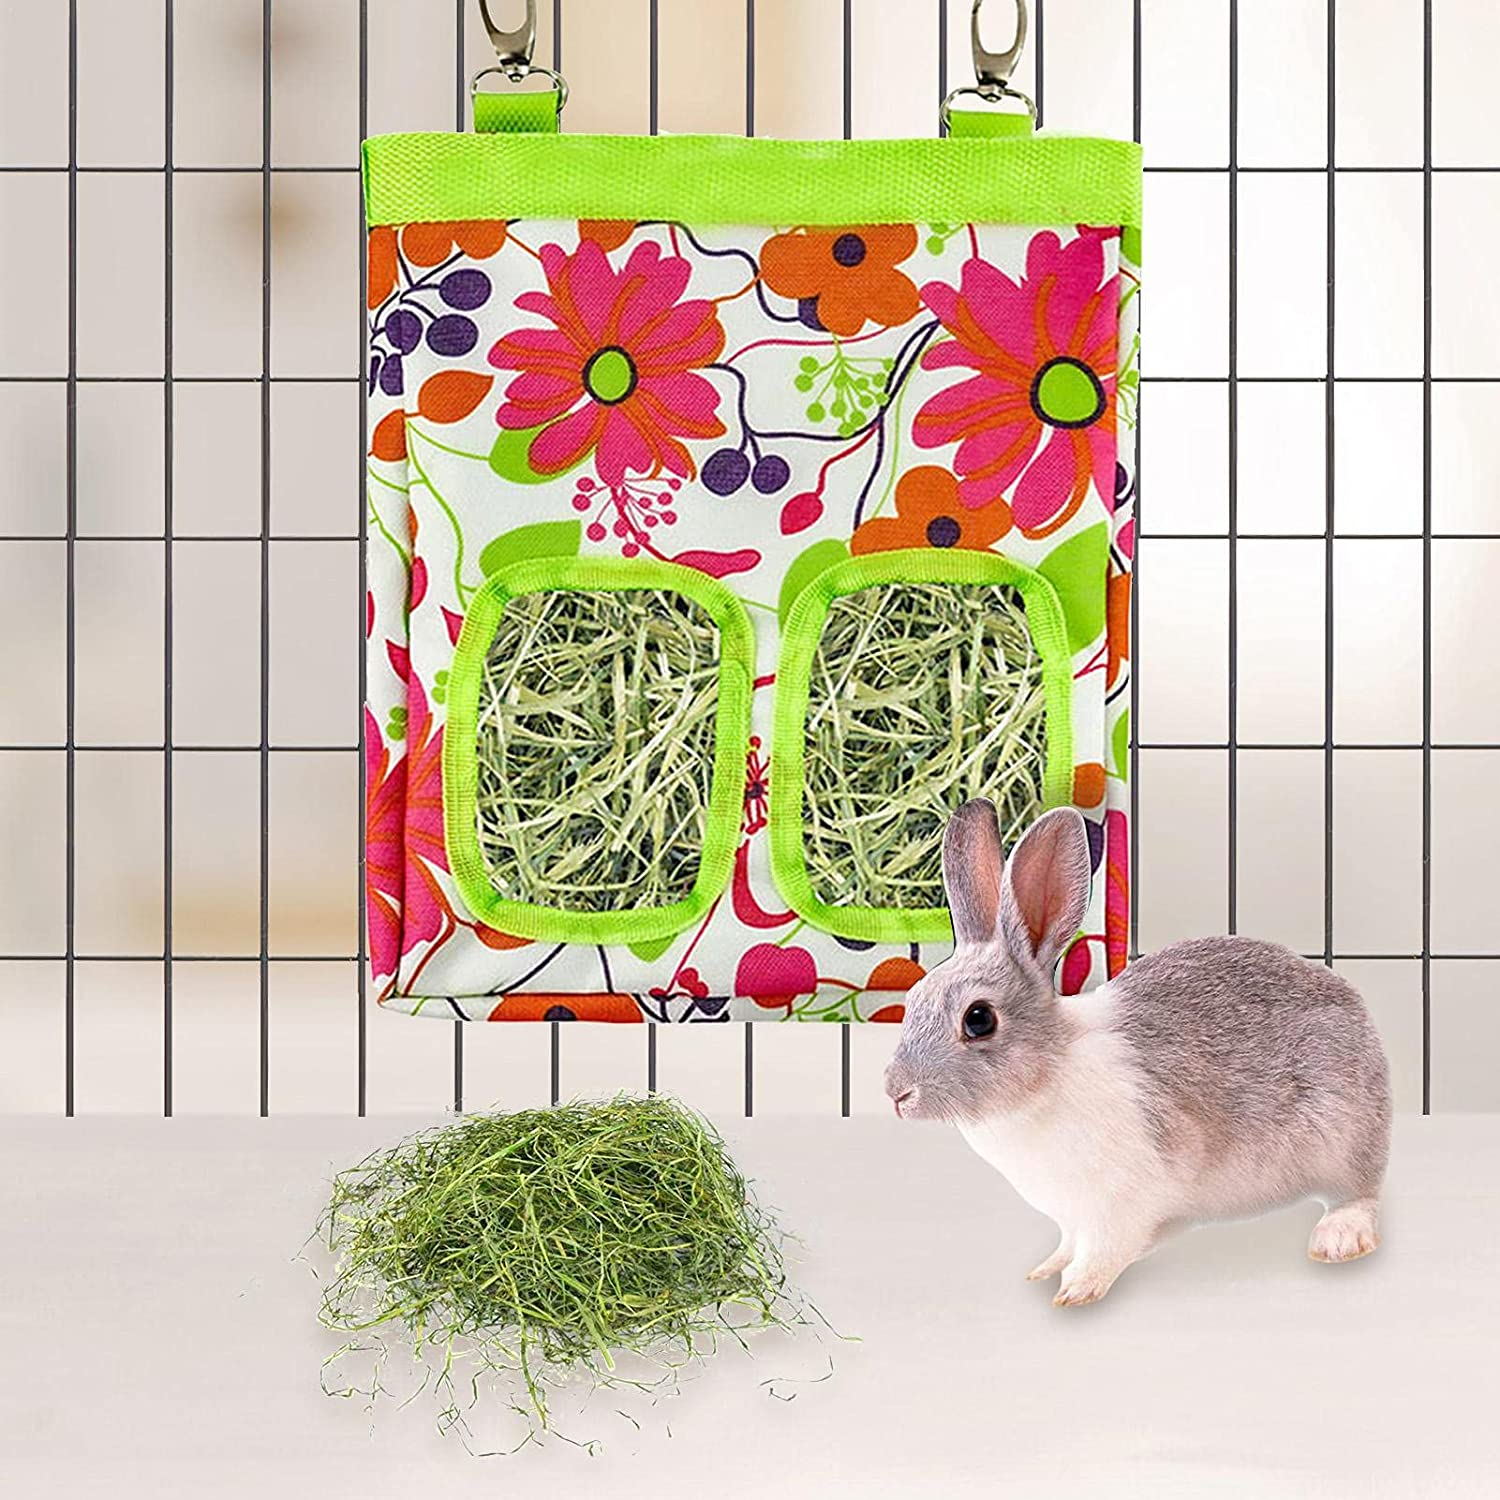 MTAPH Rabbit Feeding Bag Ranking TOP16 Guinea Pig Under blast sales 2 Holes Small with Hay